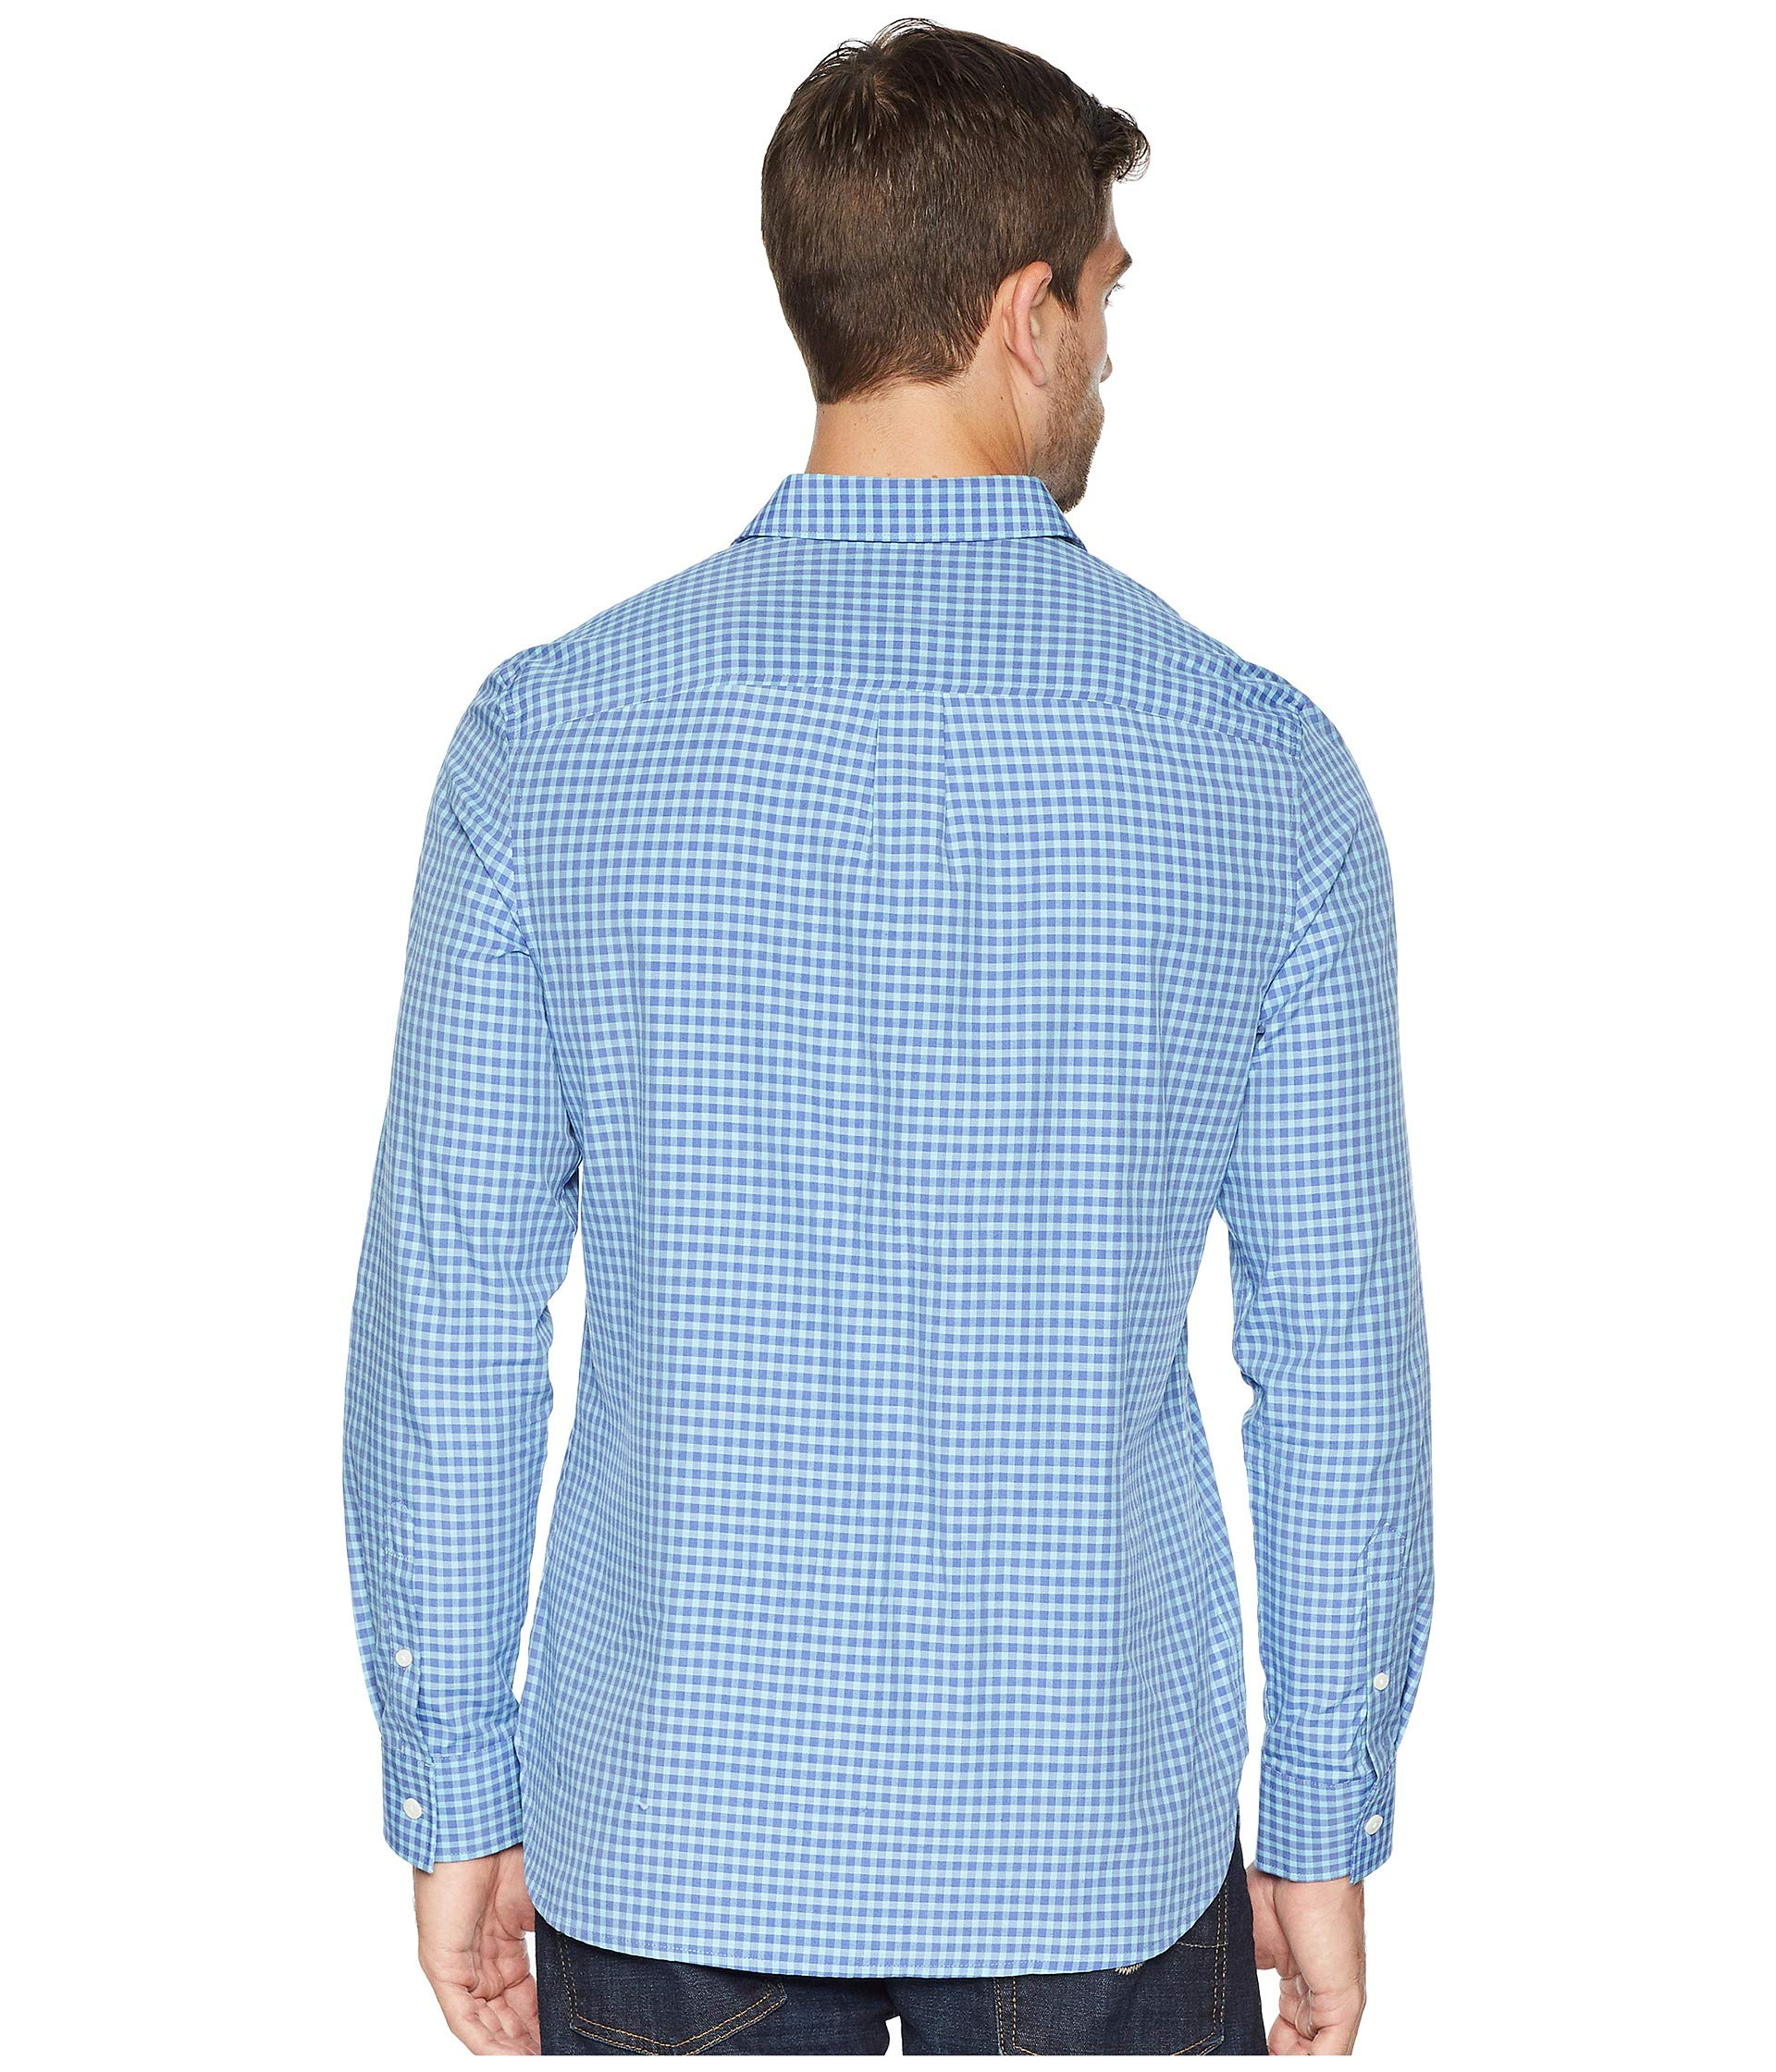 The cashmere Shirt Calvin Klein Cotton Riviera H5OxAq4